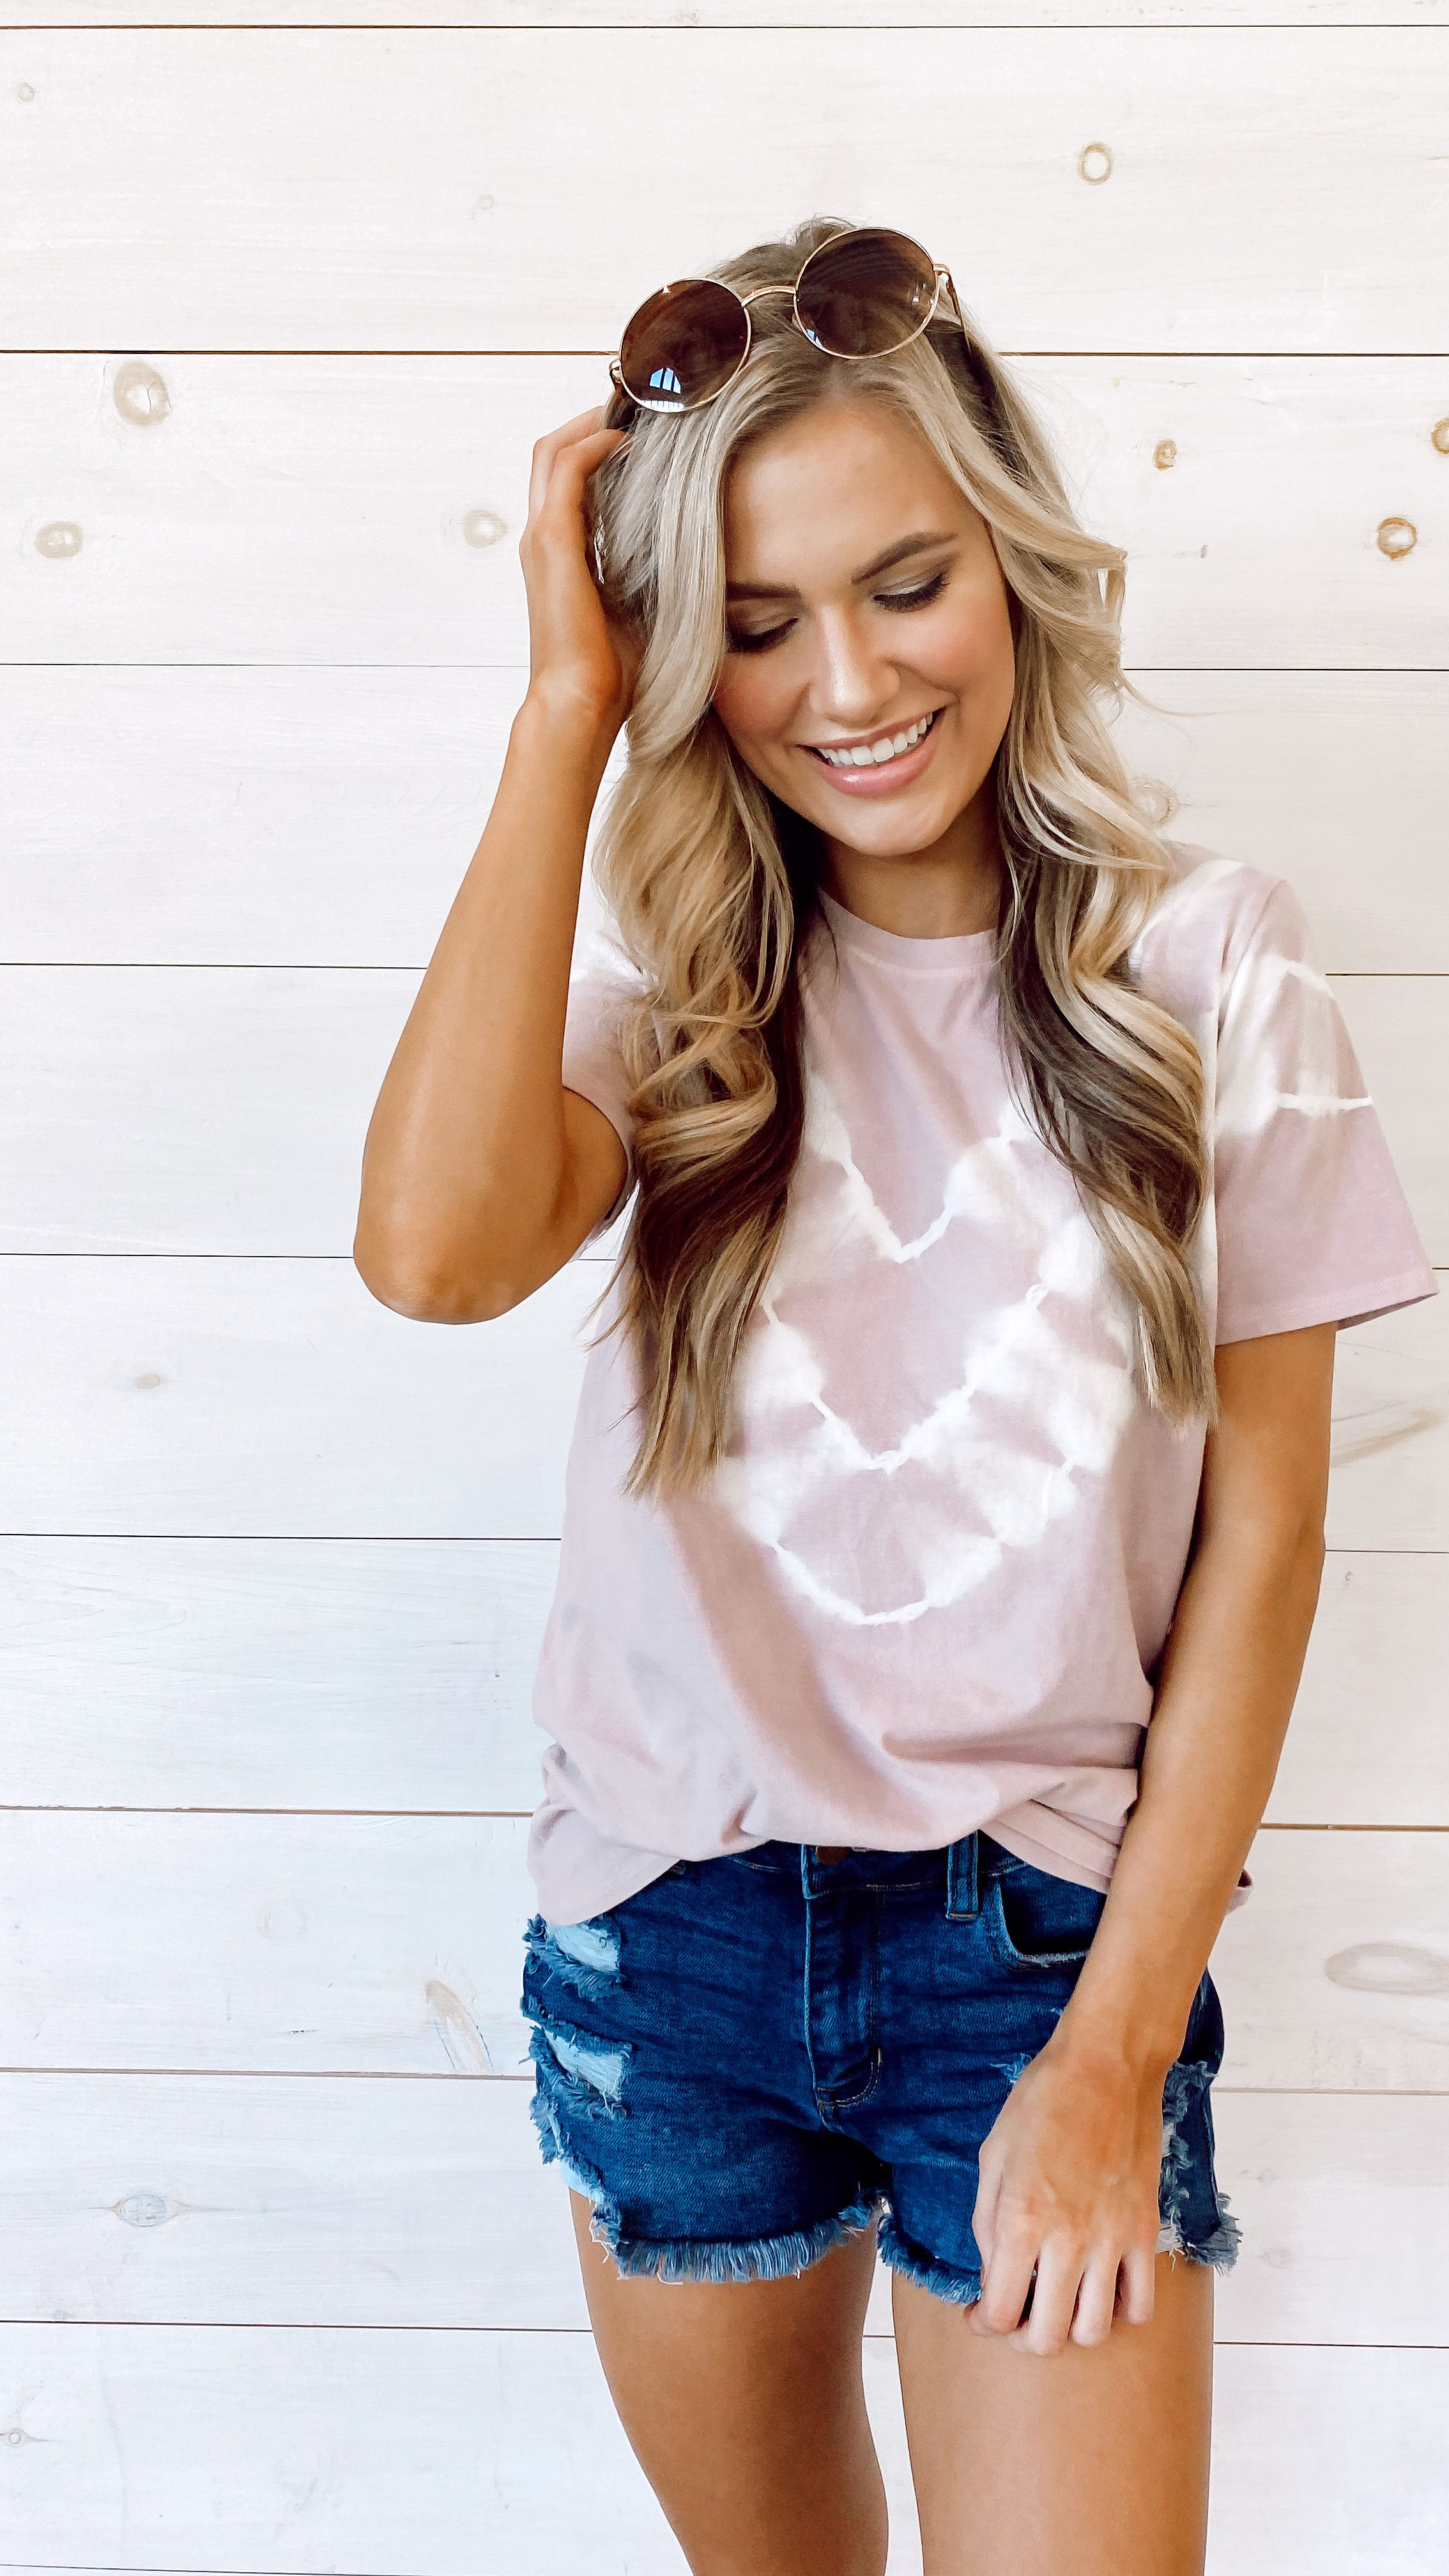 Stay on-trend with the Harper Tie-Dye Tee! You'll have this style on repeat all year with its versatile tie-dye print, relaxed fit, and soft + stretchy knit fabrication. Style it now with shorts and sandals or your favorite PJ pants for lounging around the house! #tiedye #tiedyetop   Soft + Stretchy Knit Fabrication Tie-Dye Print Short Sleeves Crew Neckline Relaxed Fit 96% Cotton, 4% Spandex Hand Wash Cold, Hang Dry Model is 5'6